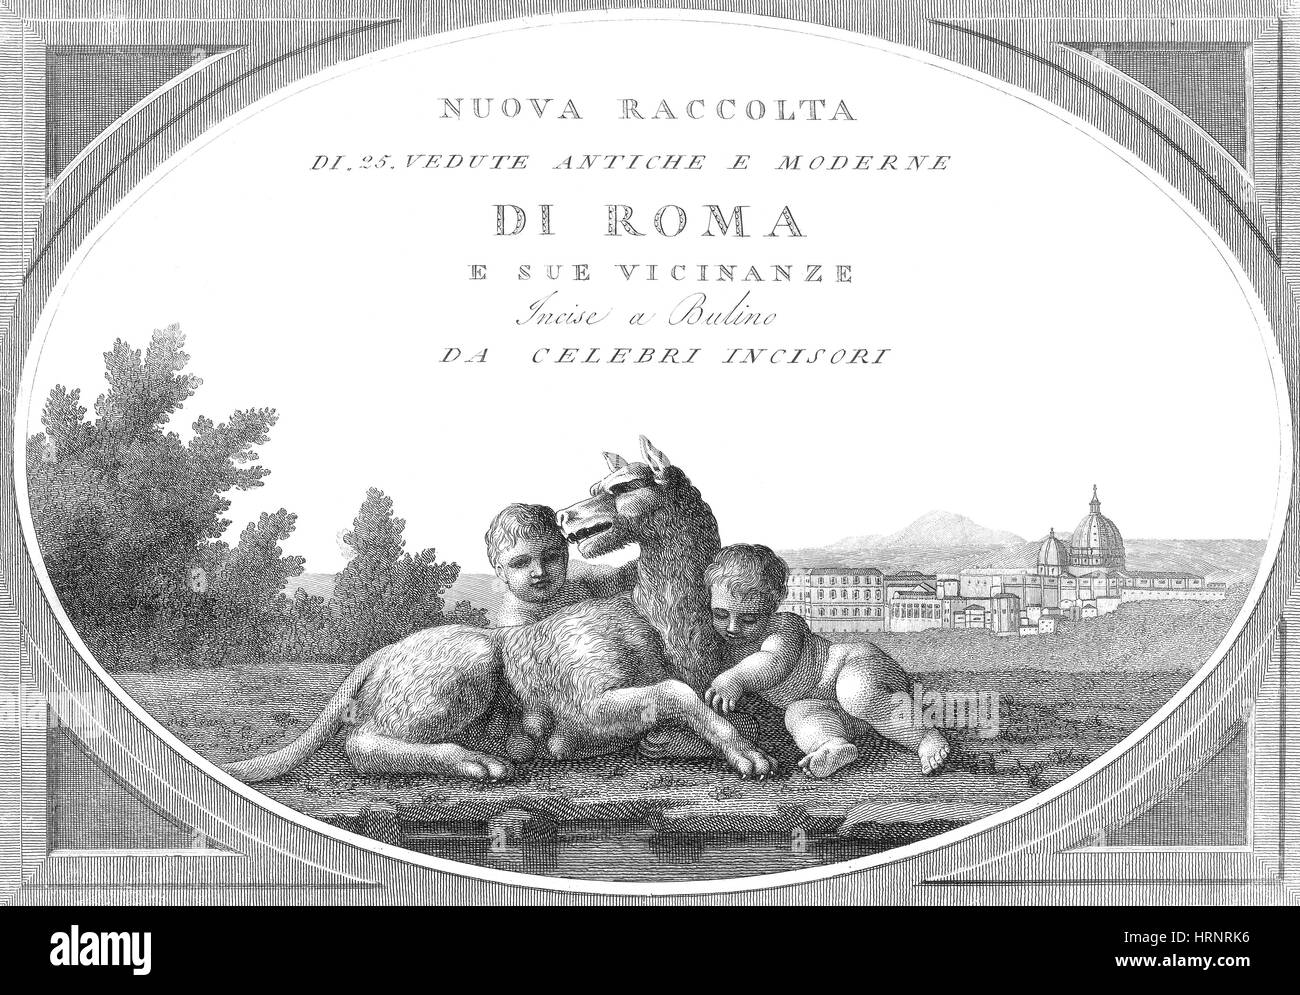 Romulus and Remus, Founders of Rome - Stock Image